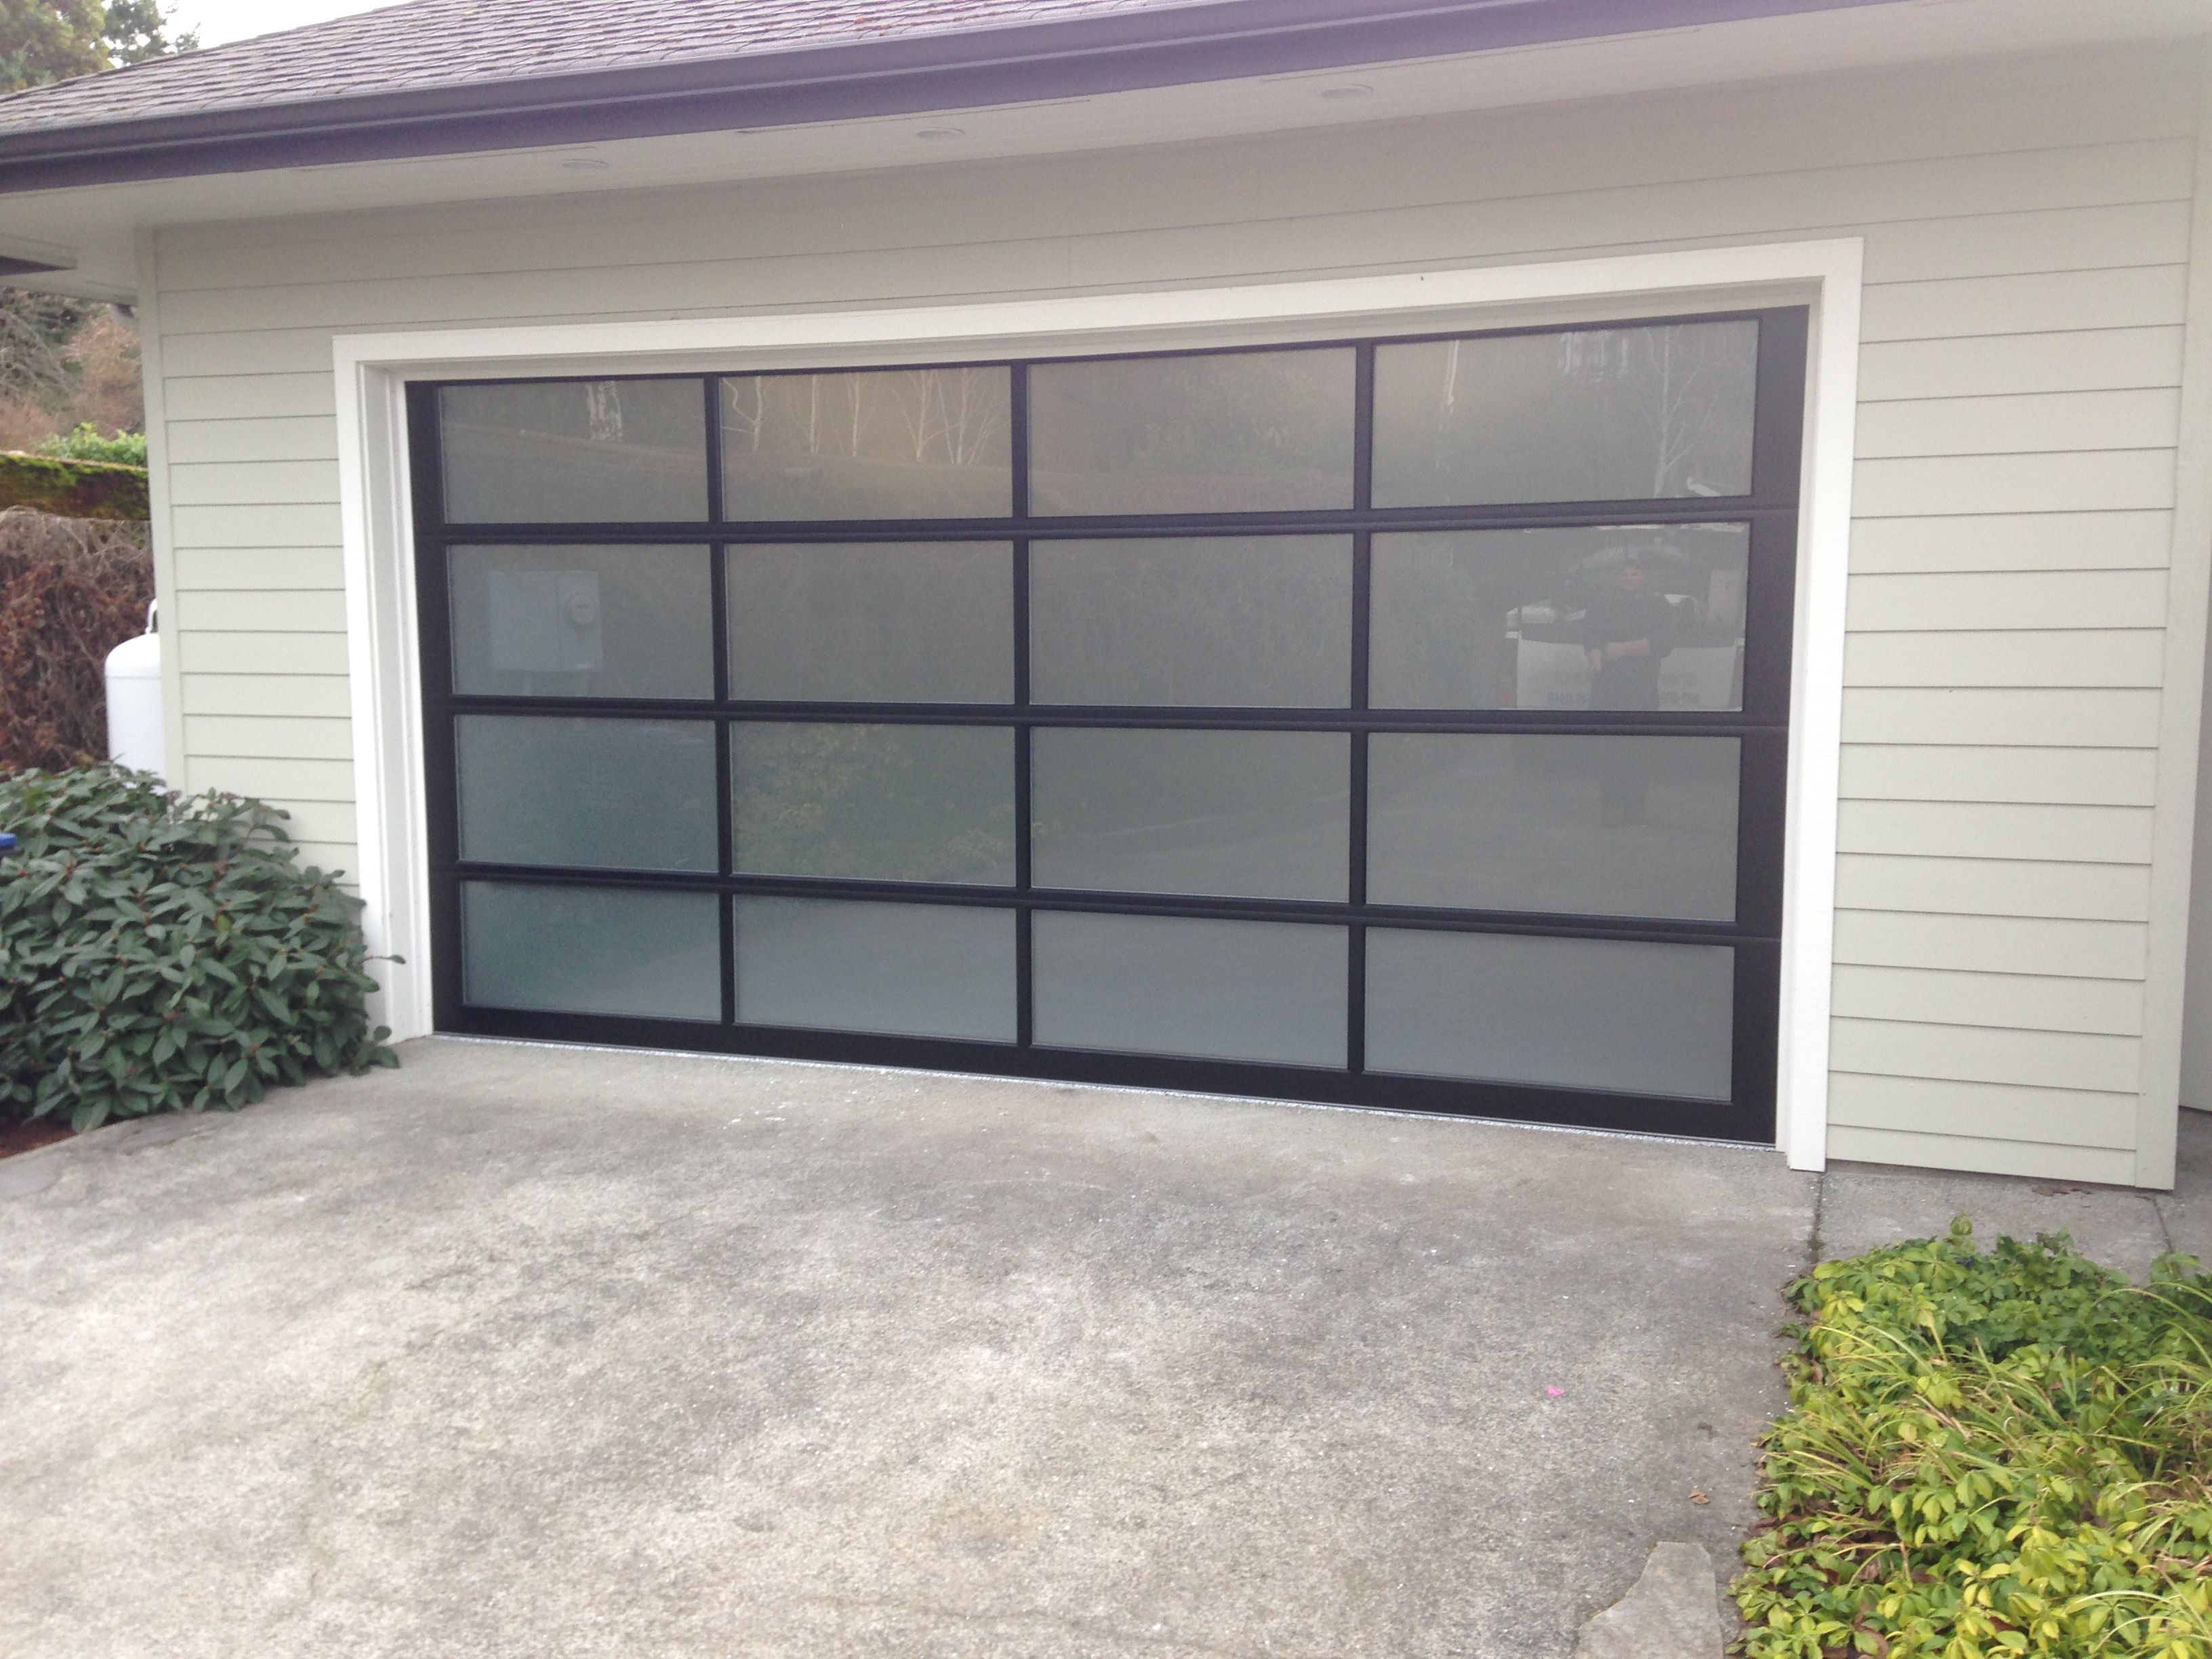 Beautiful Avante Doors with frosted glass. Installed by Kitsap garage door in Bremerton WA. #Kitsapgaragedoor & Beautiful Avante Doors with frosted glass. Installed by Kitsap ...